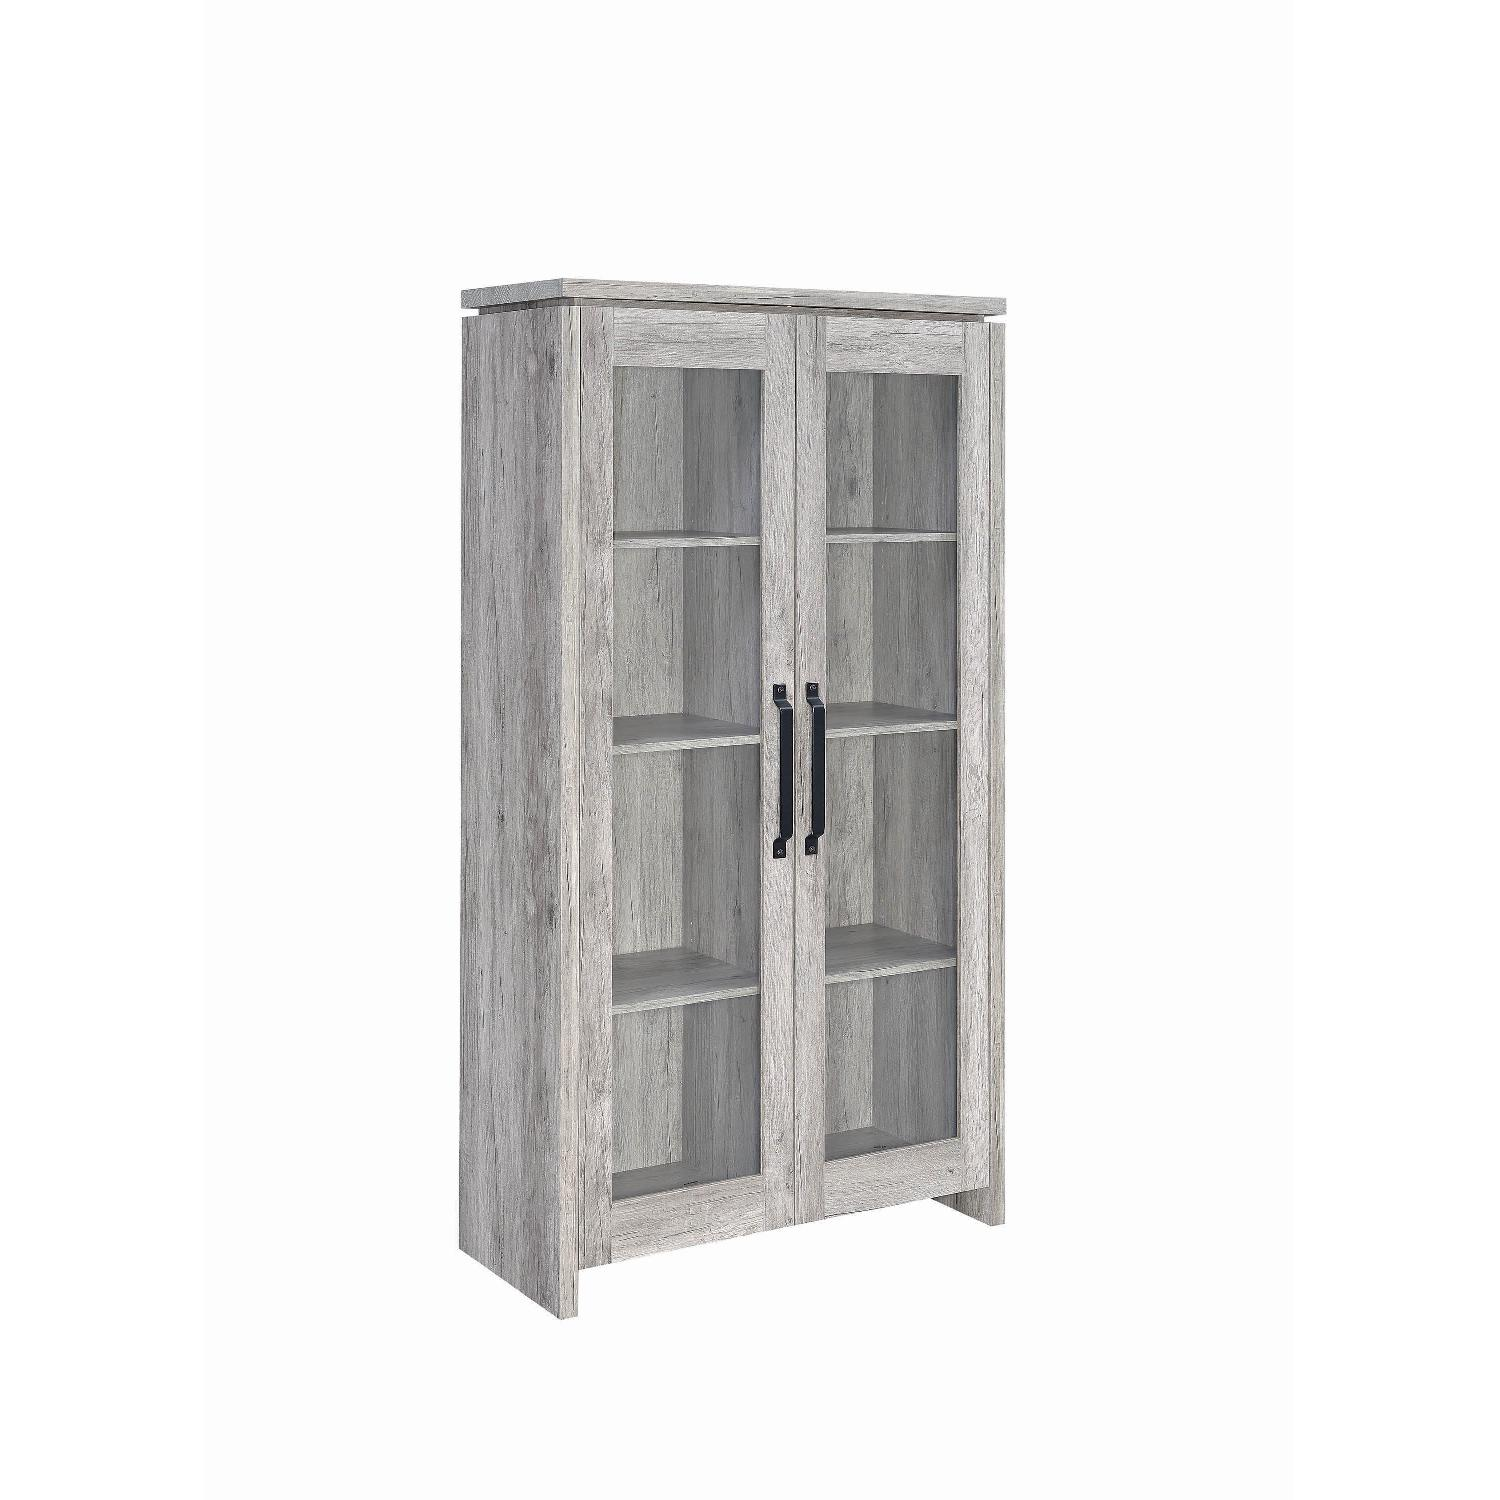 Industrial Style Curio Cabinet in Grey Driftwood Finish - image-2